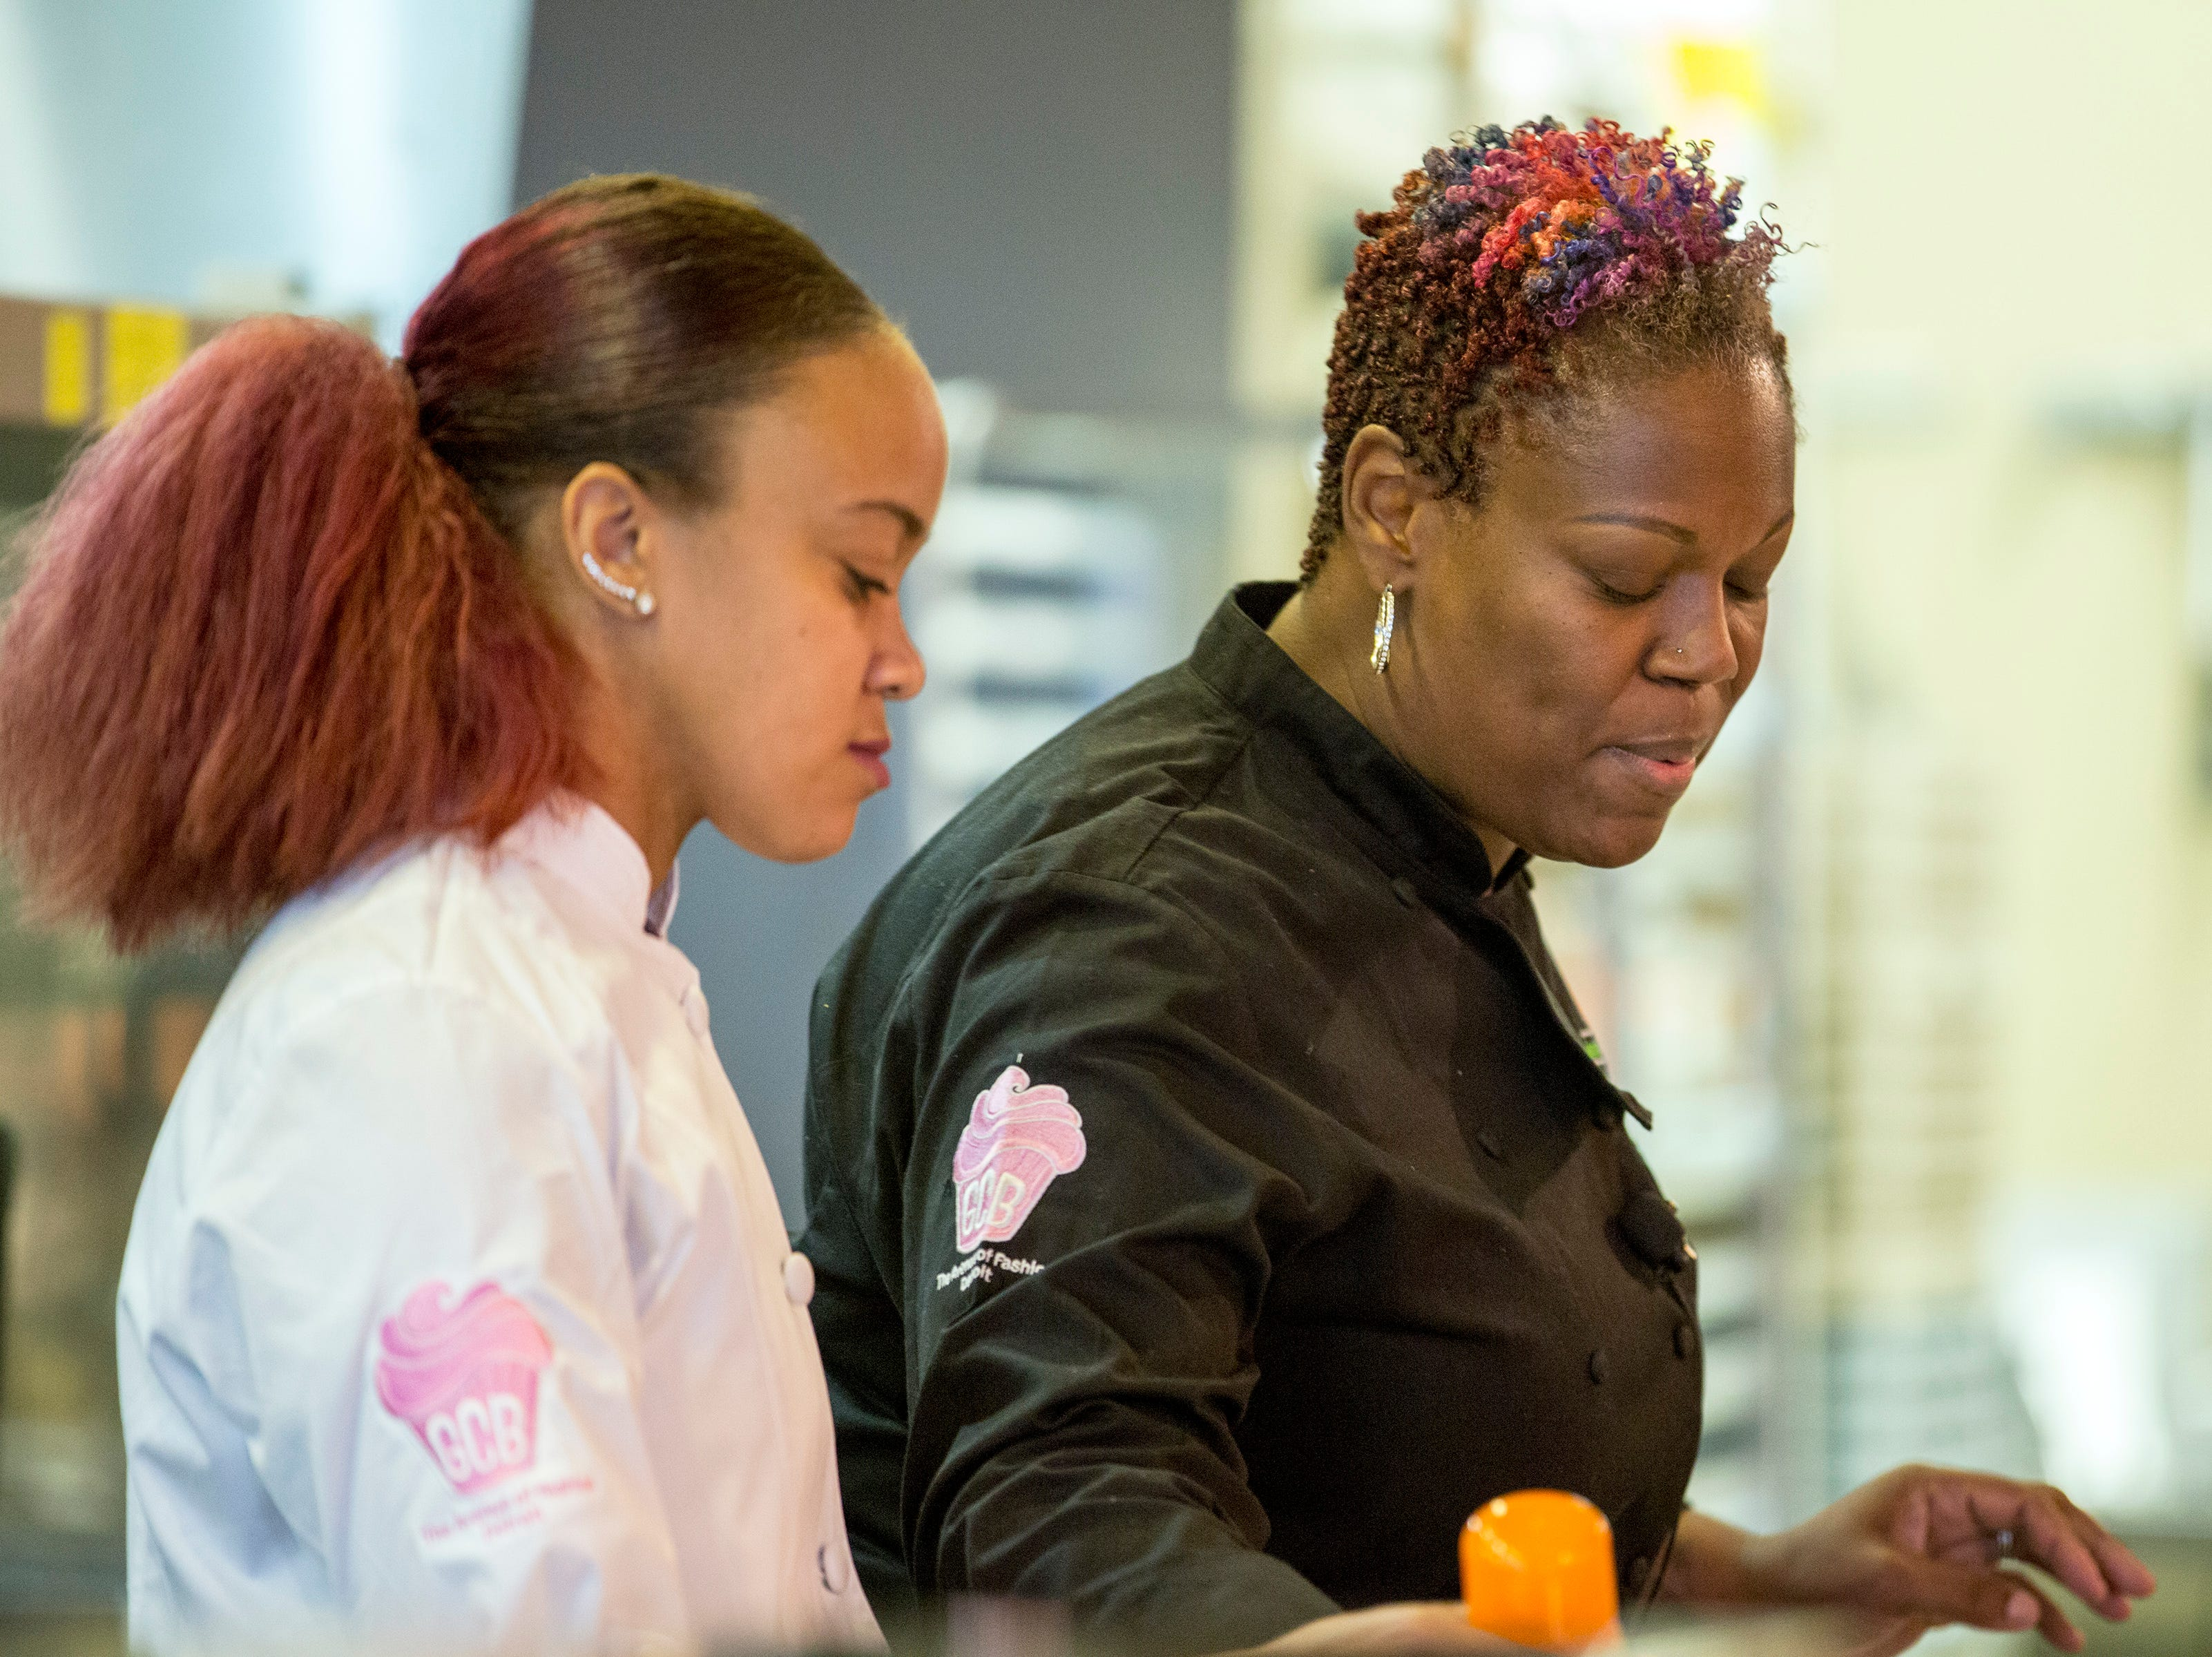 From left, Tanea Blanchard and April Anderson of Good Cakes and Bakes do a live cooking demonstration during the sold-out Whisked event at the Great Lakes Culinary Center in Southfield, Mich., Sunday, Nov. 18, 2018.